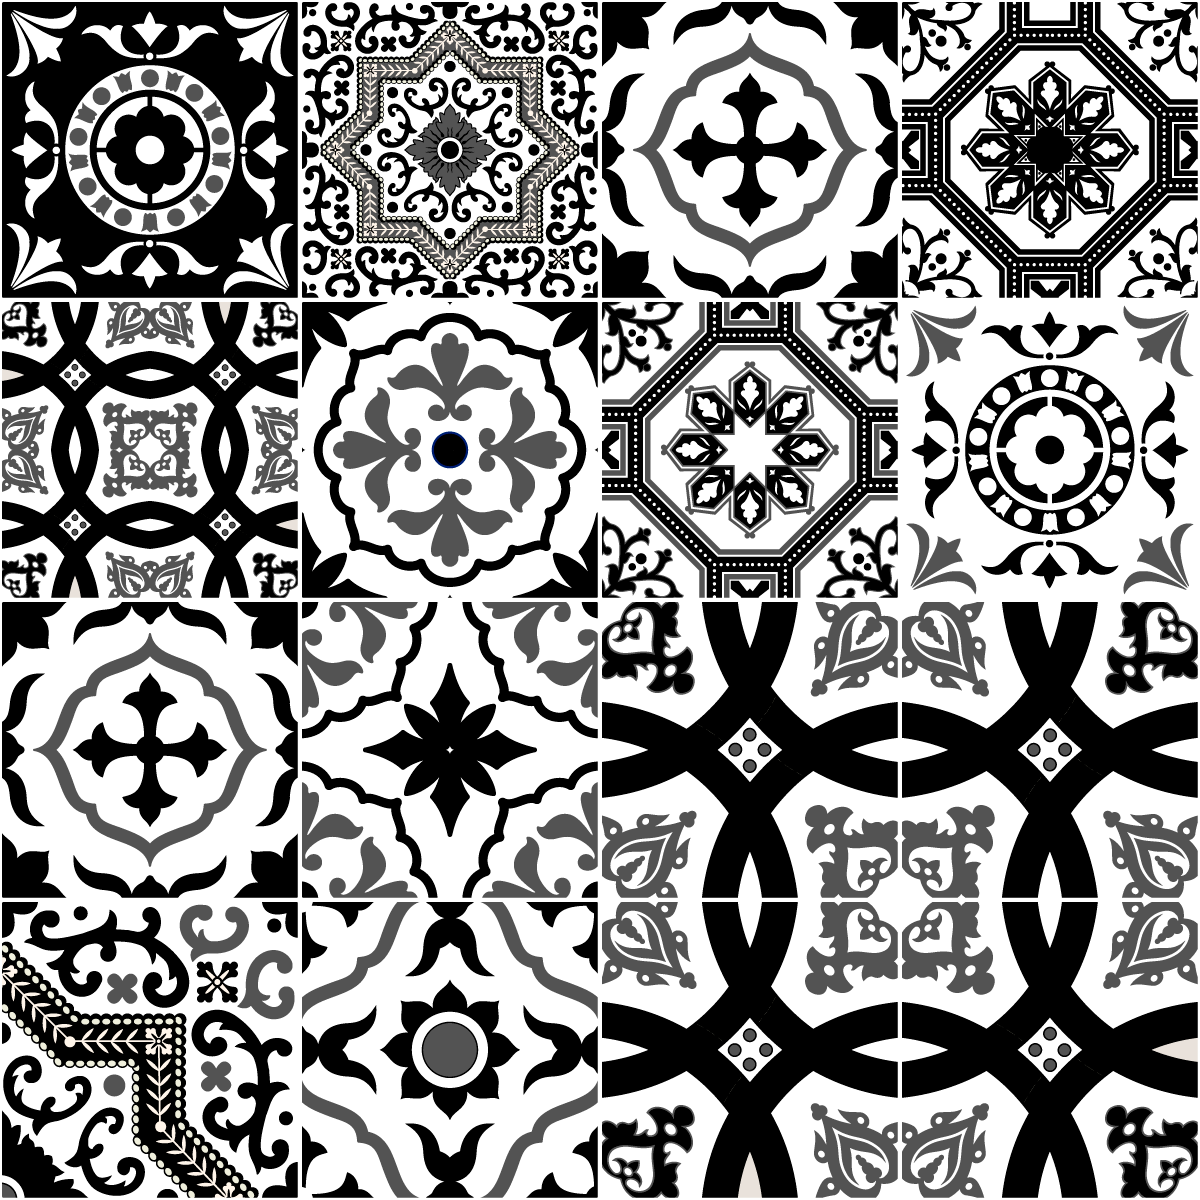 16 stickers carrelages azulejos modernes nuance noir et blanc art et design artistiques. Black Bedroom Furniture Sets. Home Design Ideas